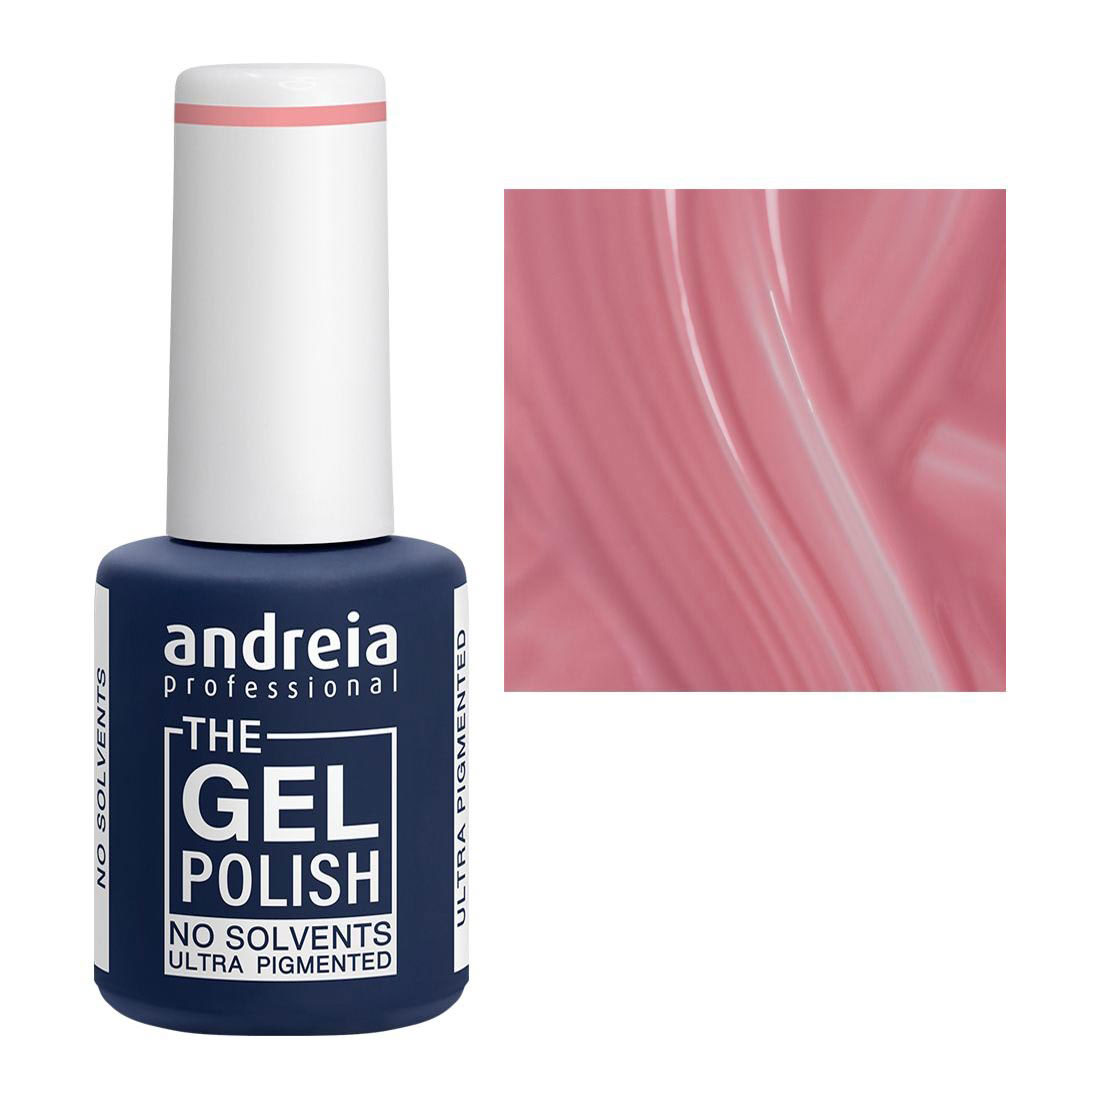 Andreia The Gel Polish G09